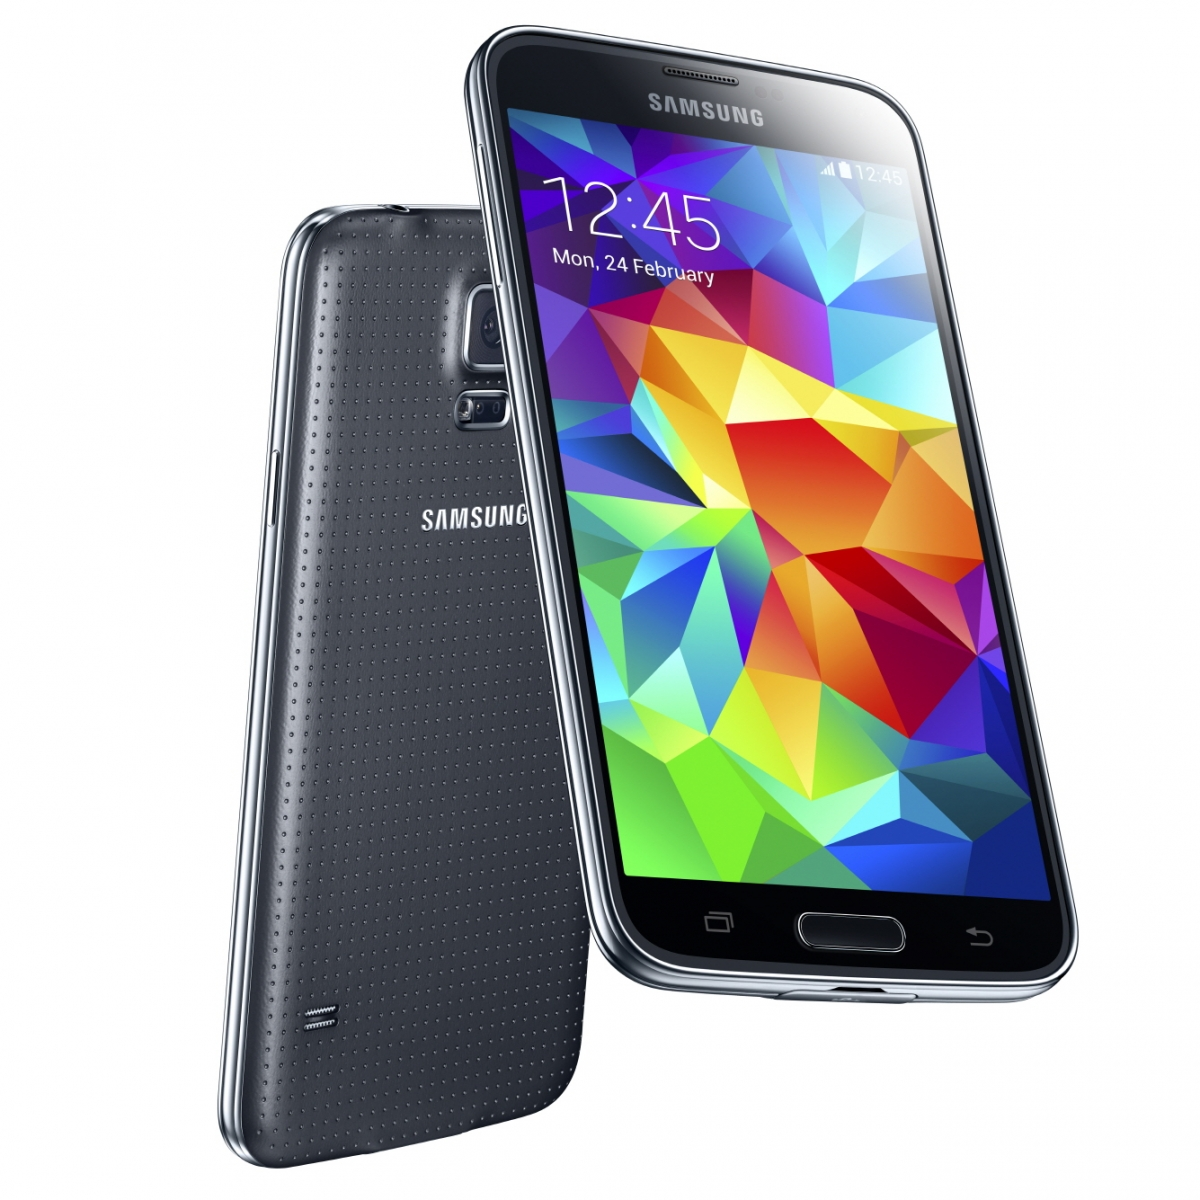 Galaxy S5 Gets Stability Update Ahead of Global Launch